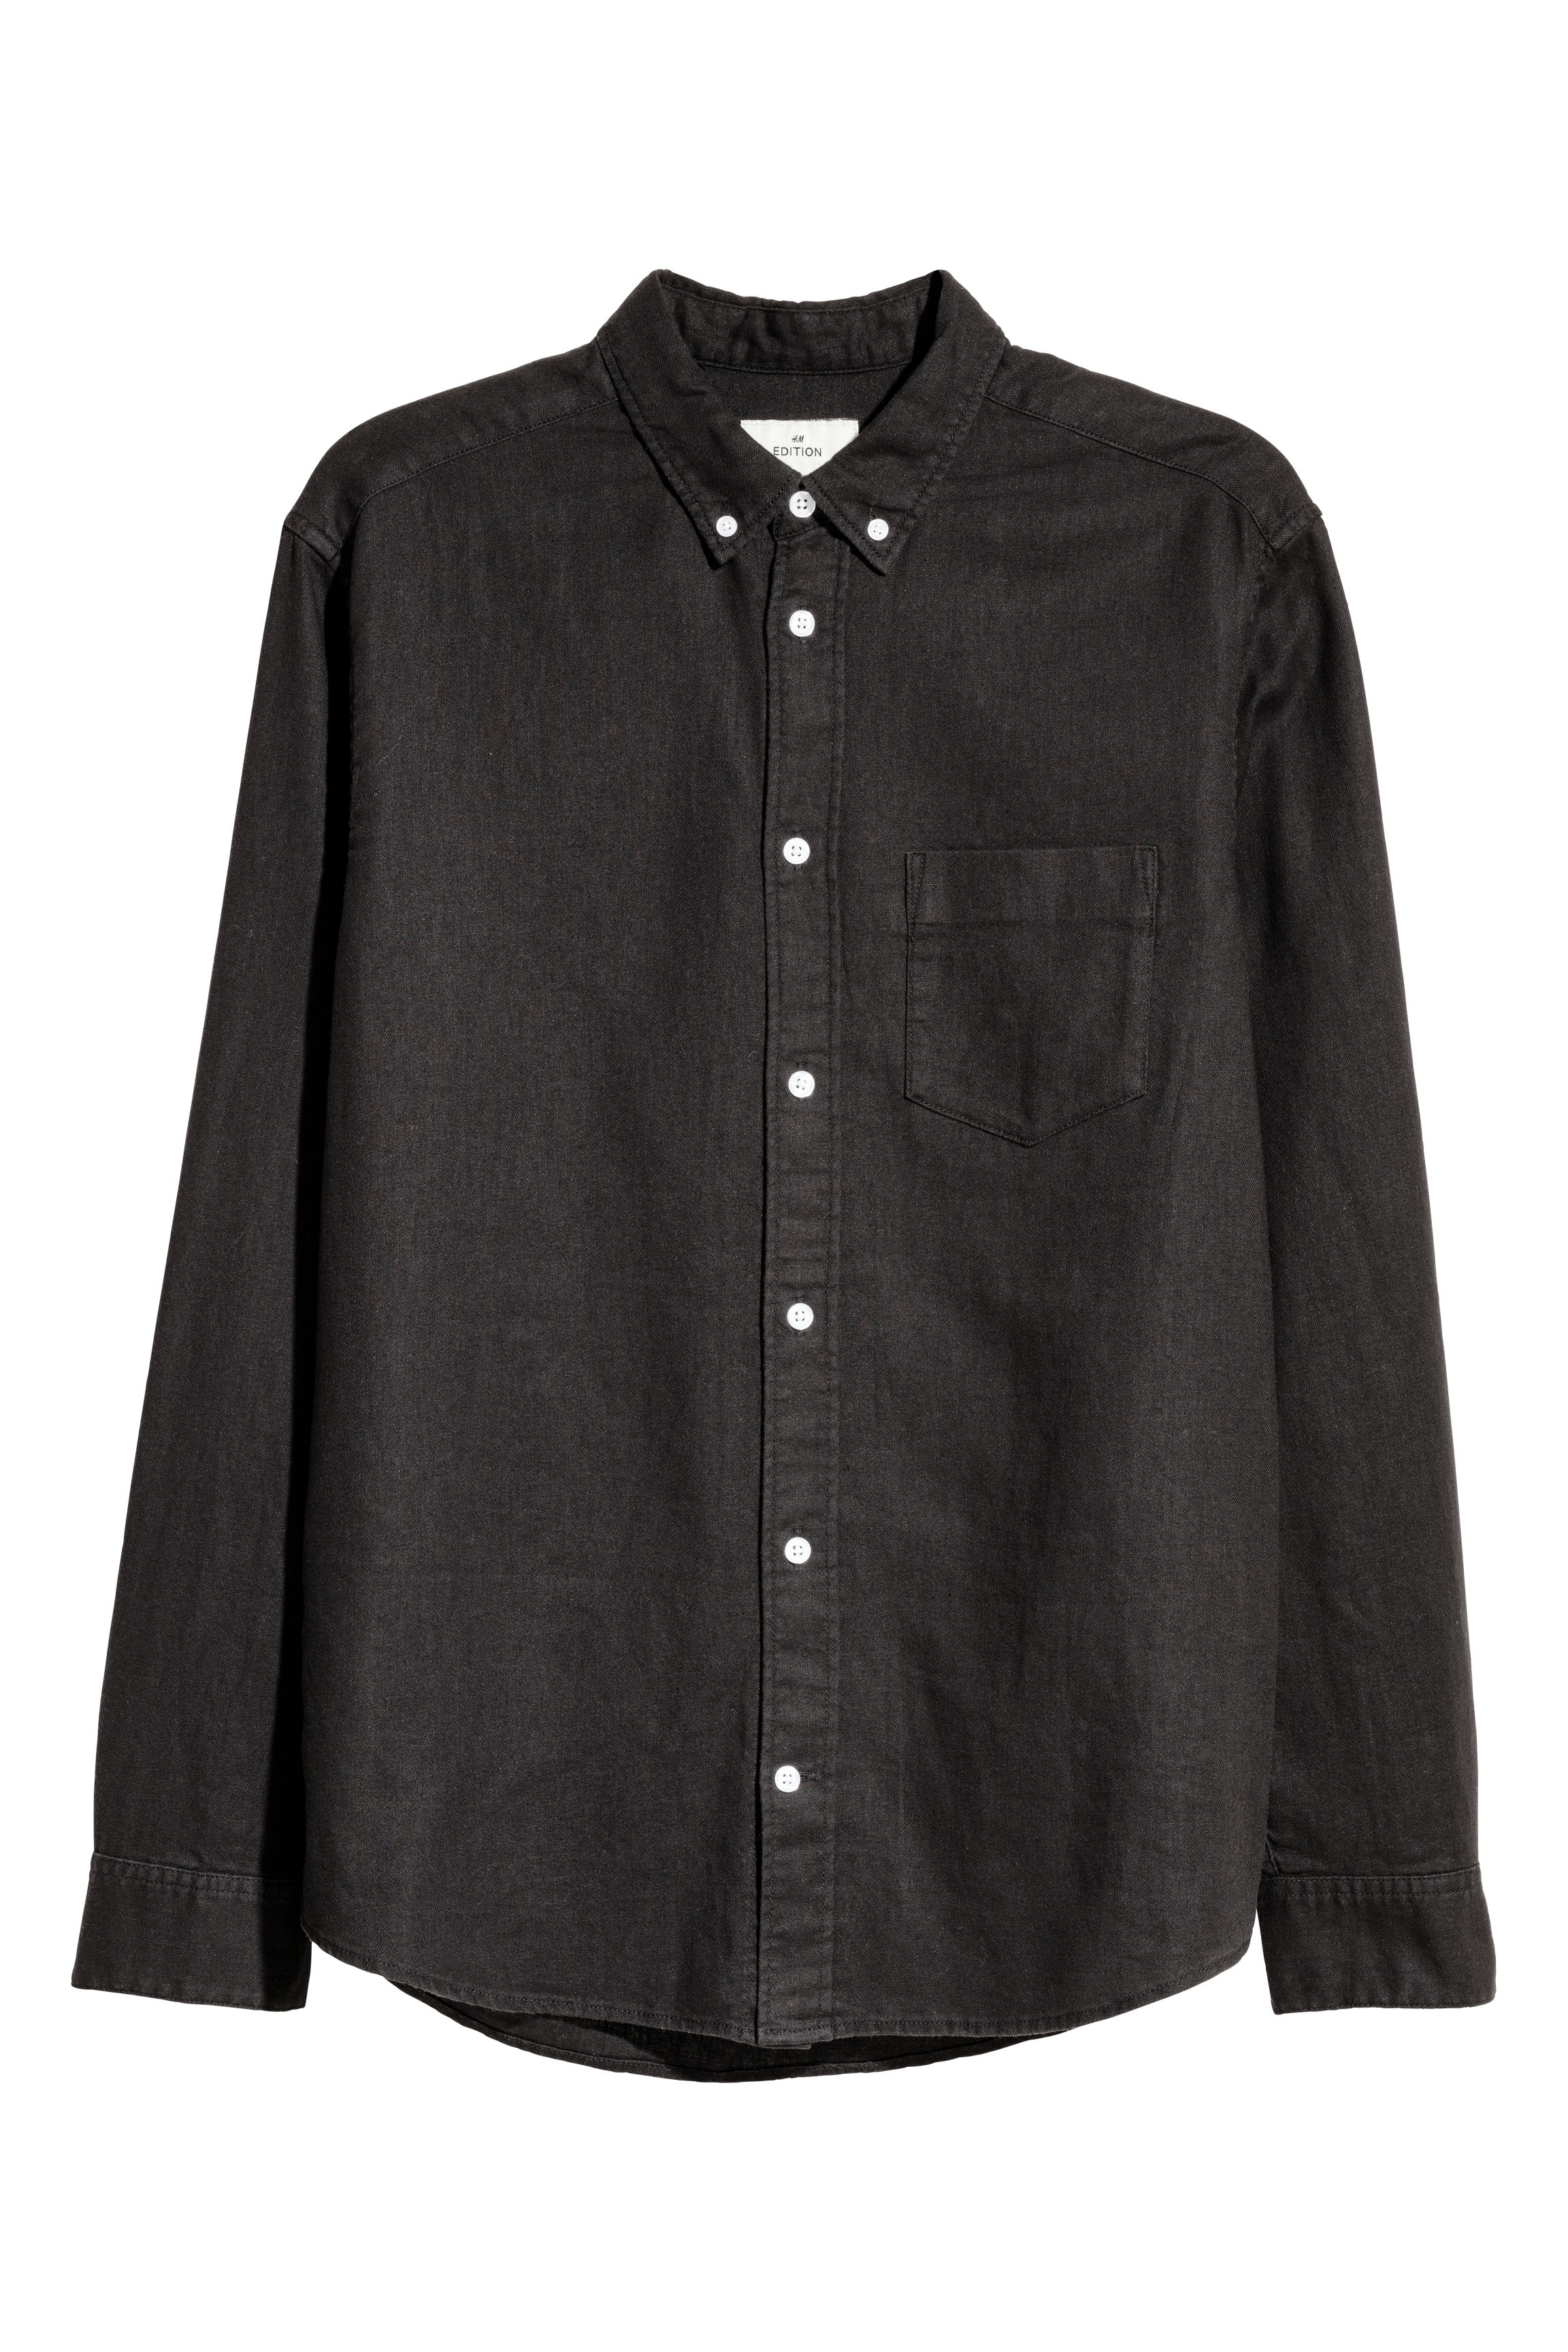 H&M Edition Black Denim shirt